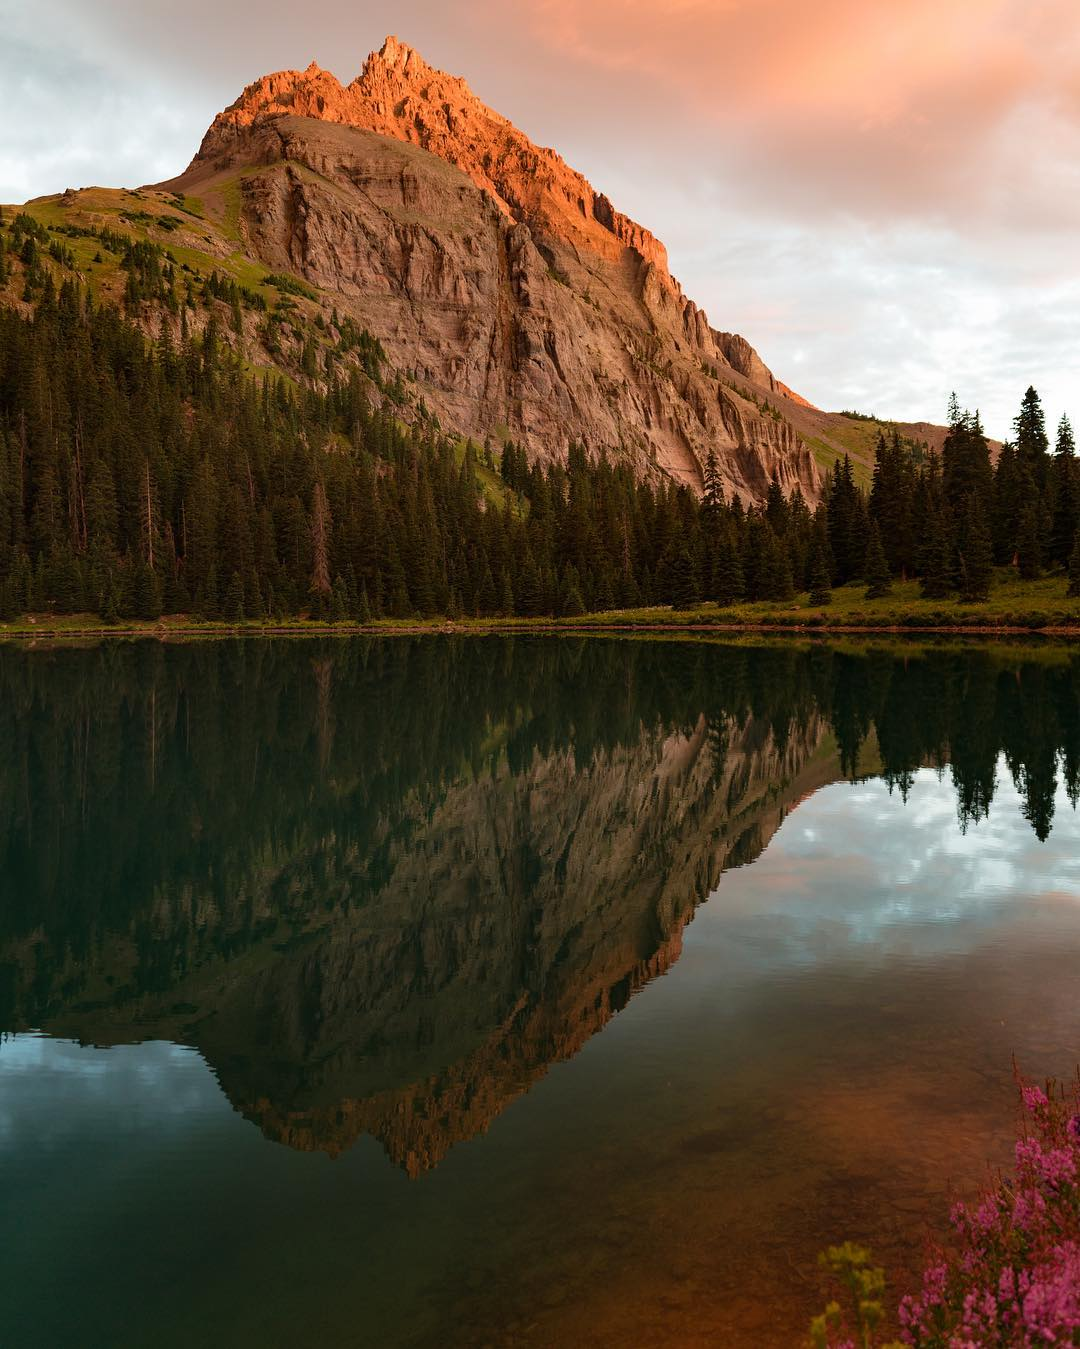 USA Photography USA Photography What To Do In Telluride: Blue Lakes Trail